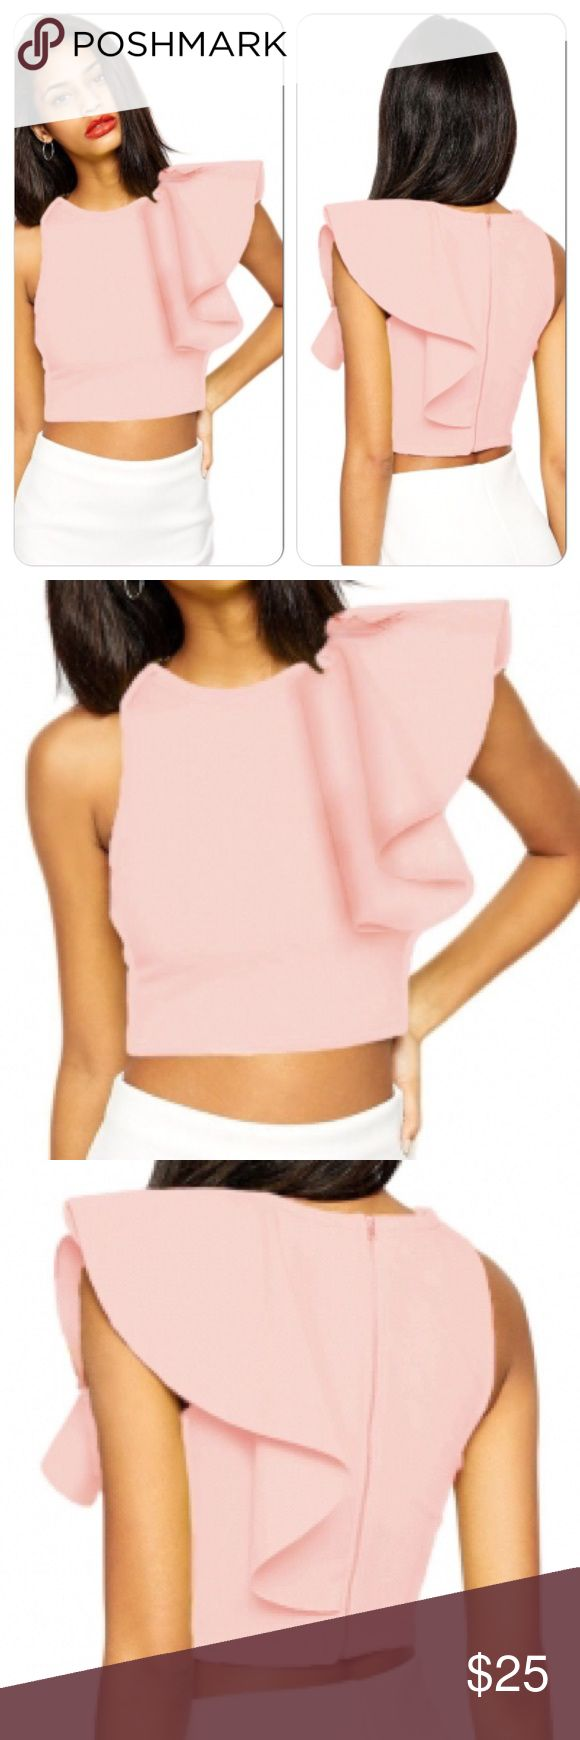 Sexy Pink Ruffle One Shoulder Zip Up Back Crop Top Stretchy Formfitting back zipper closure Tops Crop Tops